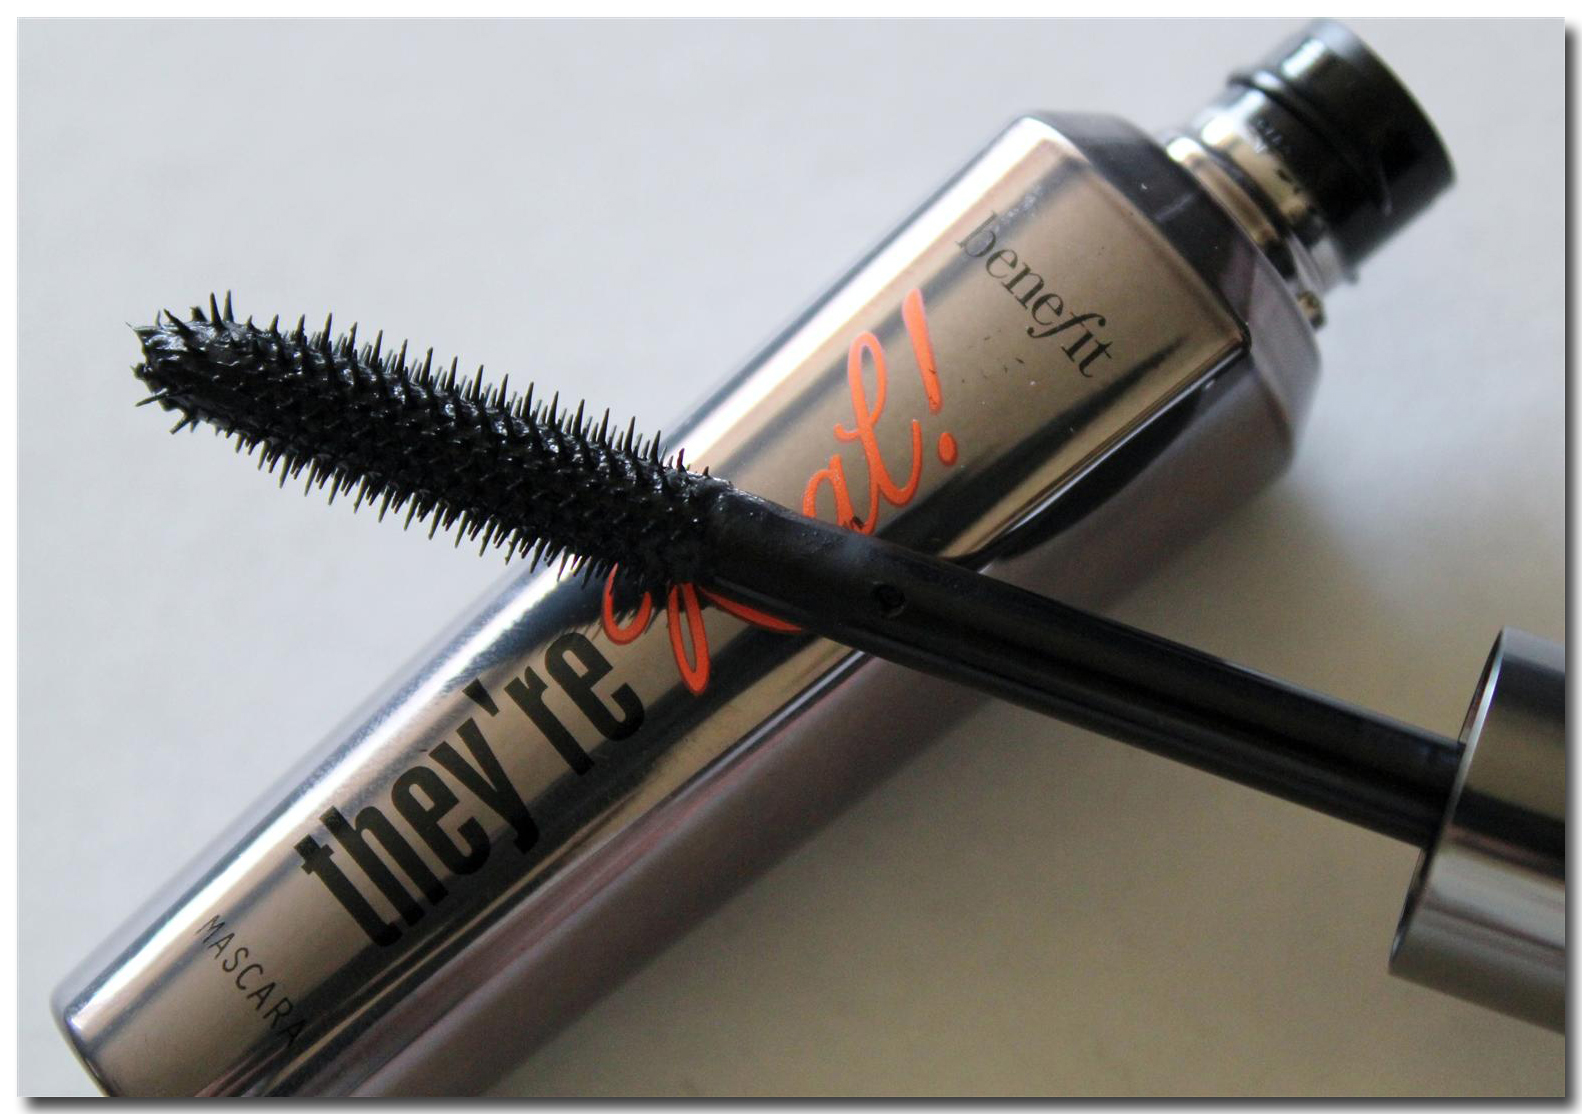 Review of Benefit Cosmetics They'Re Real! Mascara